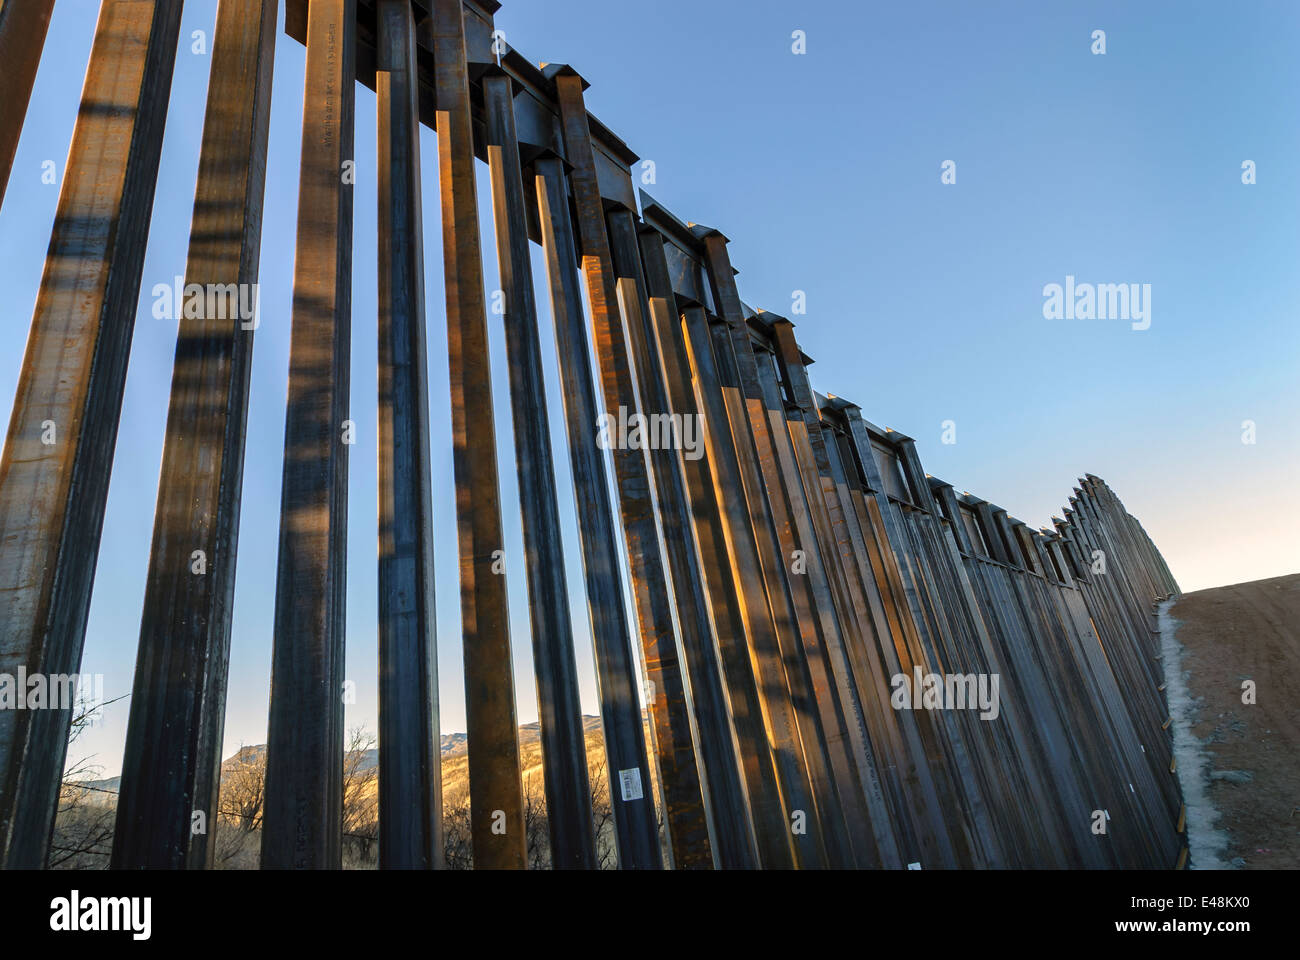 US Border Fence, east of Nogales Arizona USA, constructed autumn and winter of 2008, viewed from US side - Stock Image